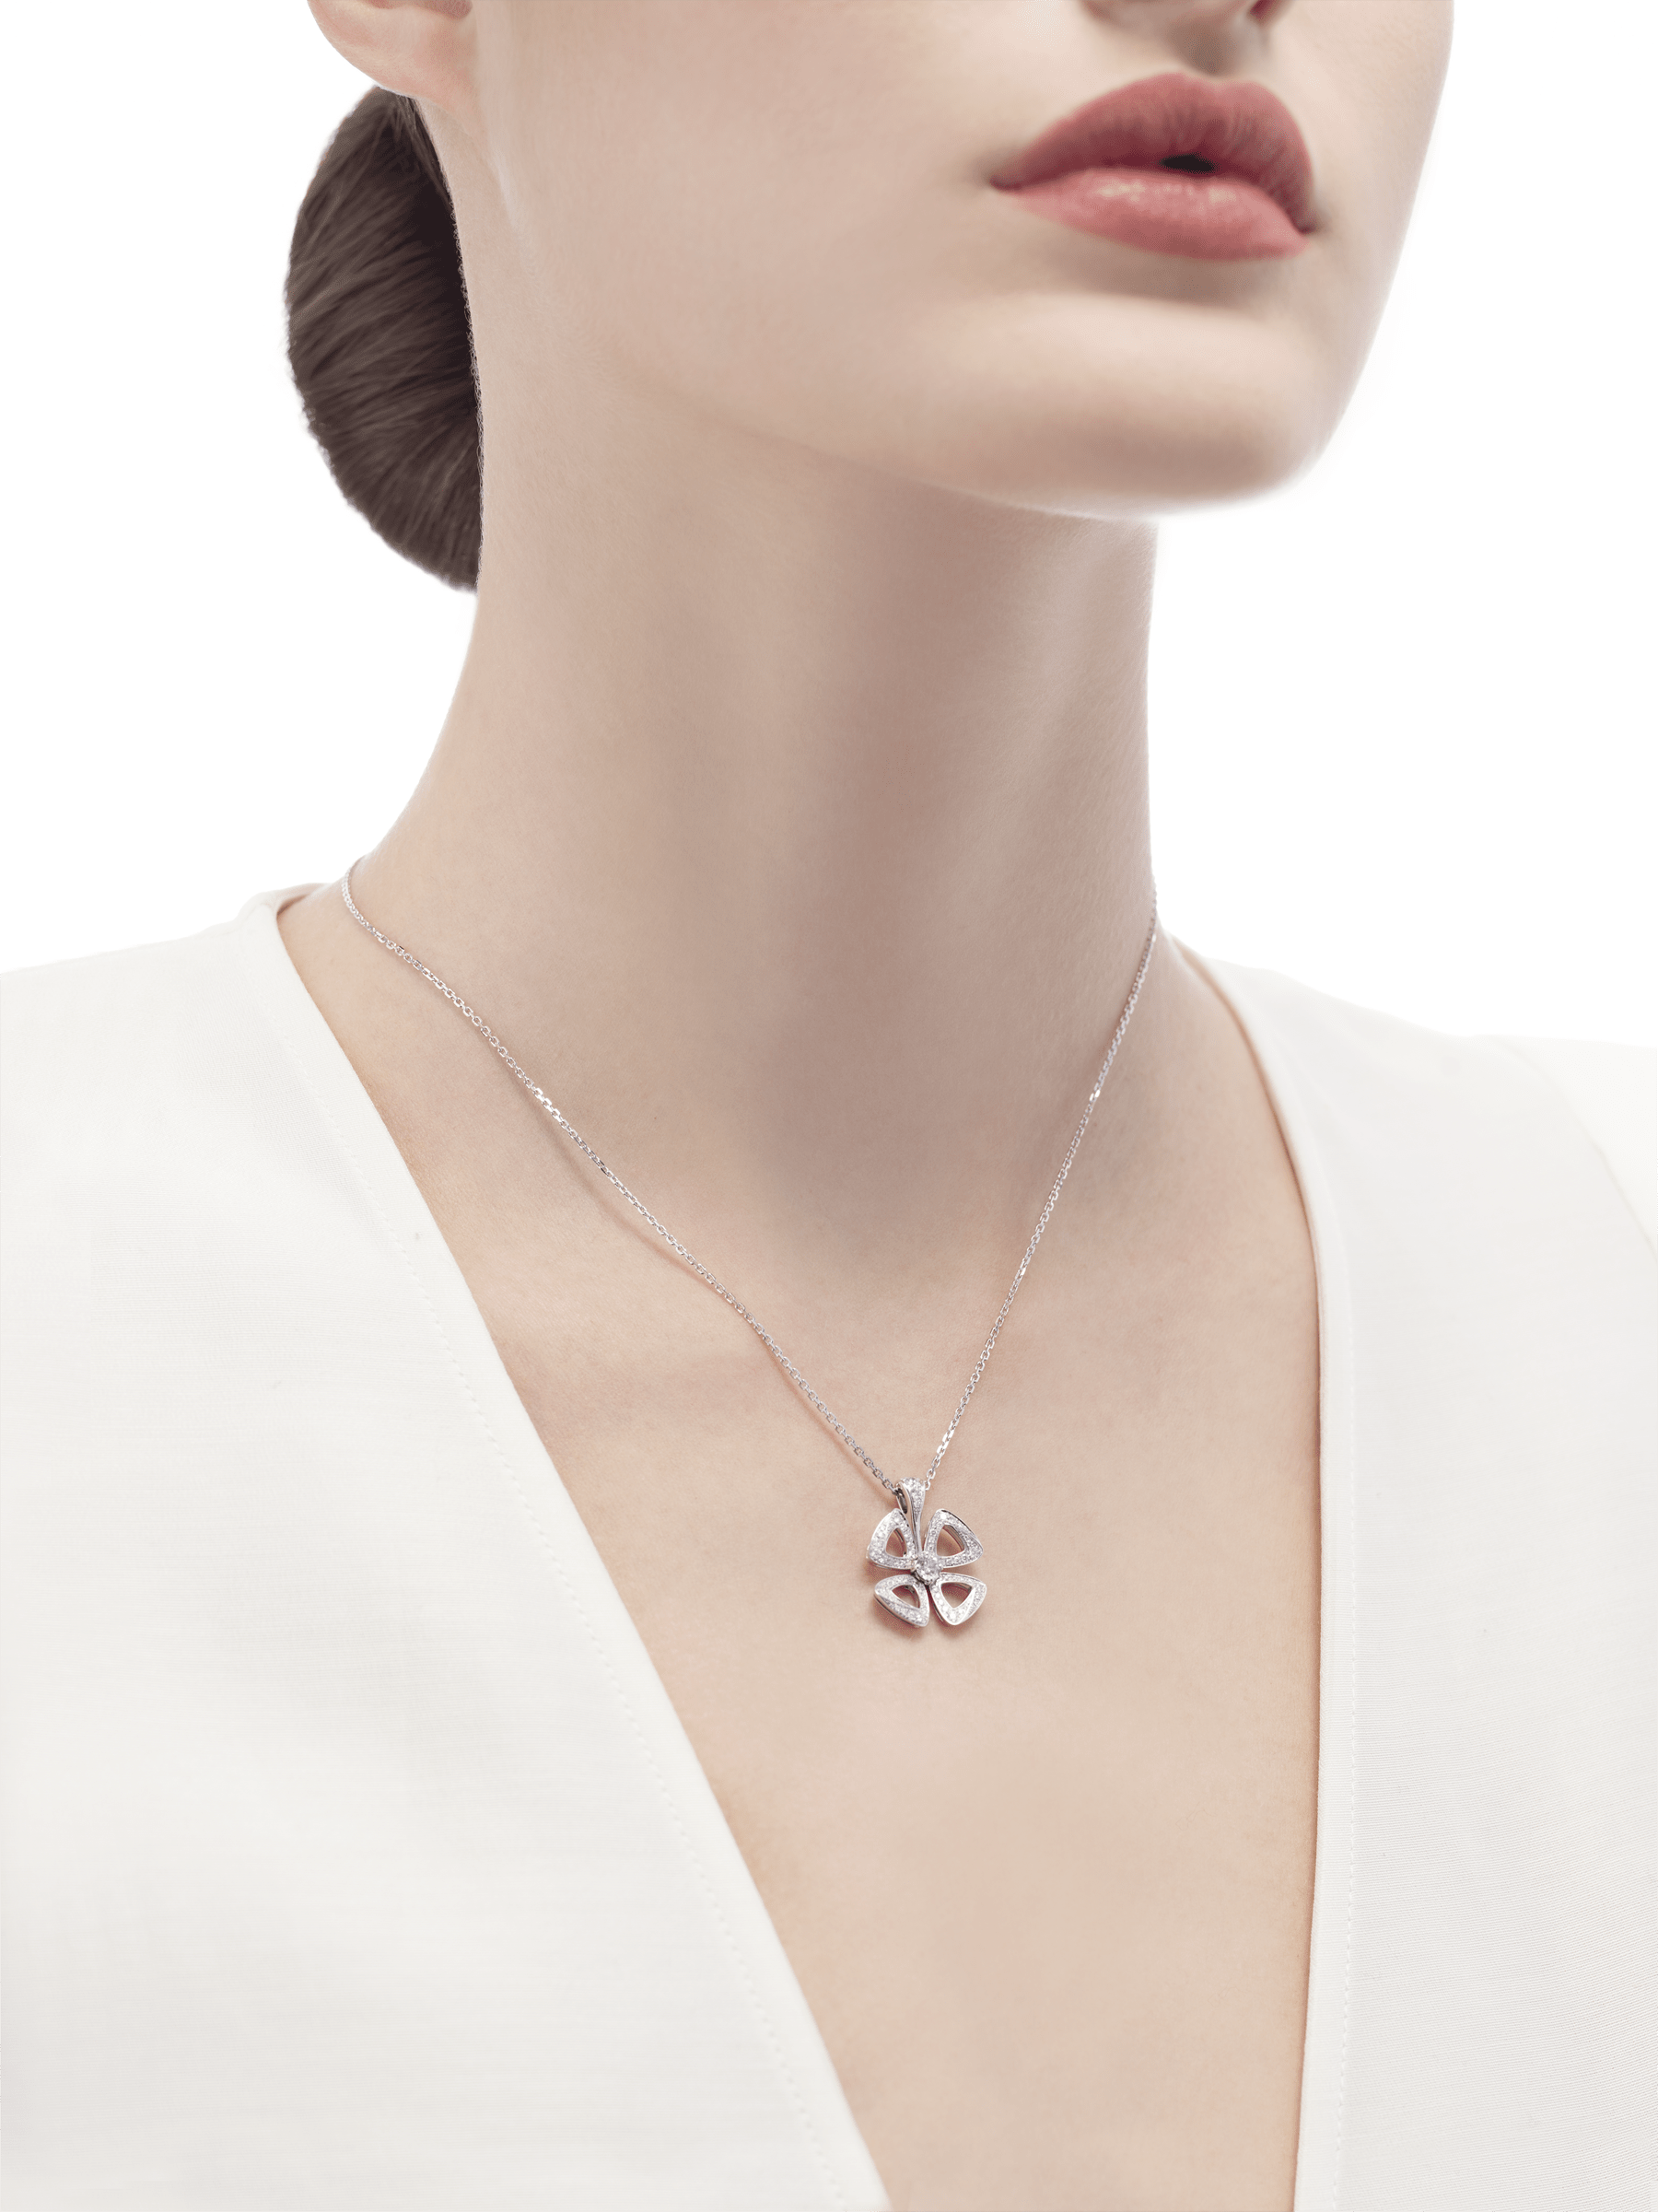 Fiorever 18 kt white gold necklace set with a central diamond and pavé diamonds. 354469 image 4